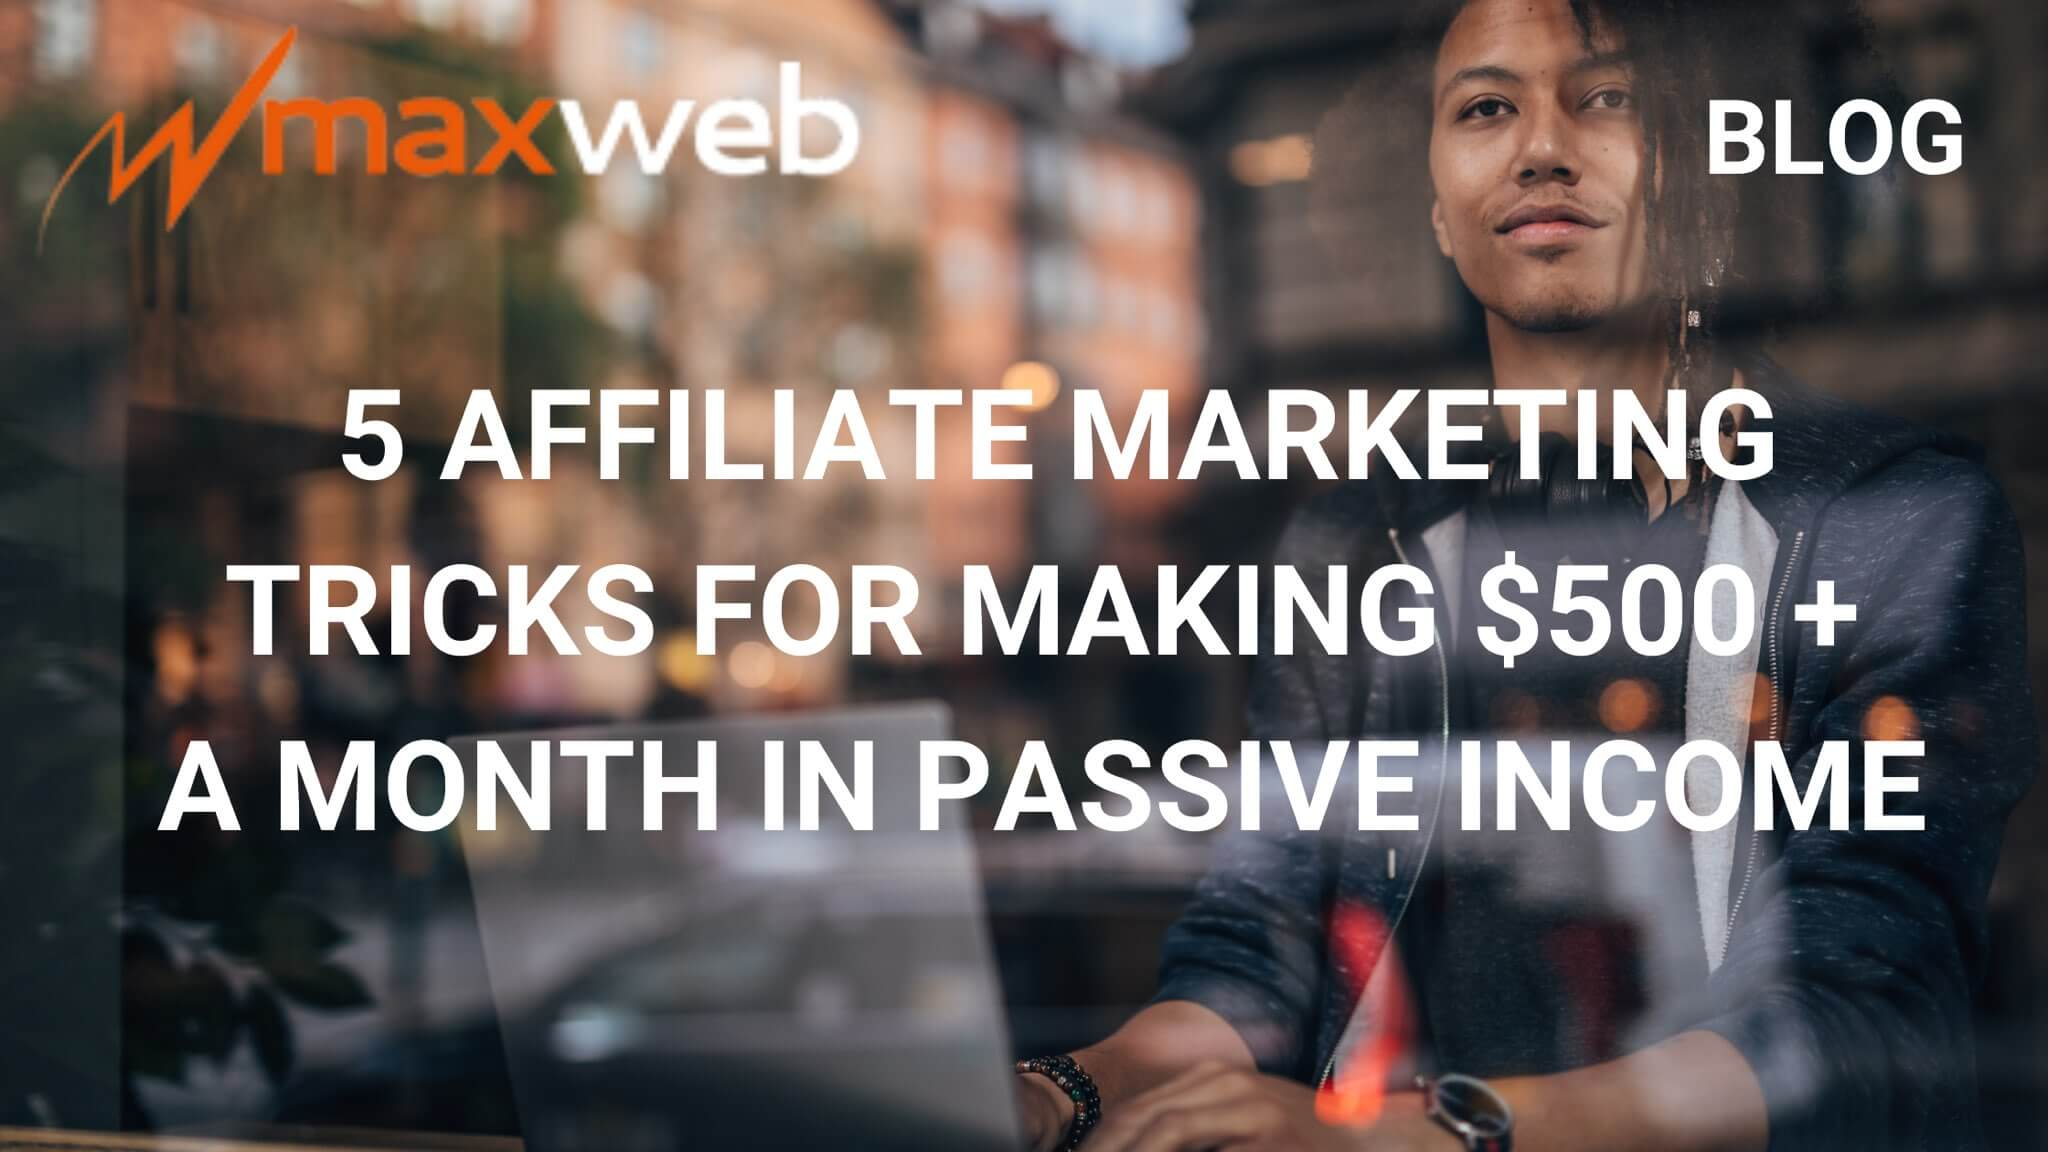 5 Affiliate Marketing Tricks For Making $500+ a Month in Passive Income